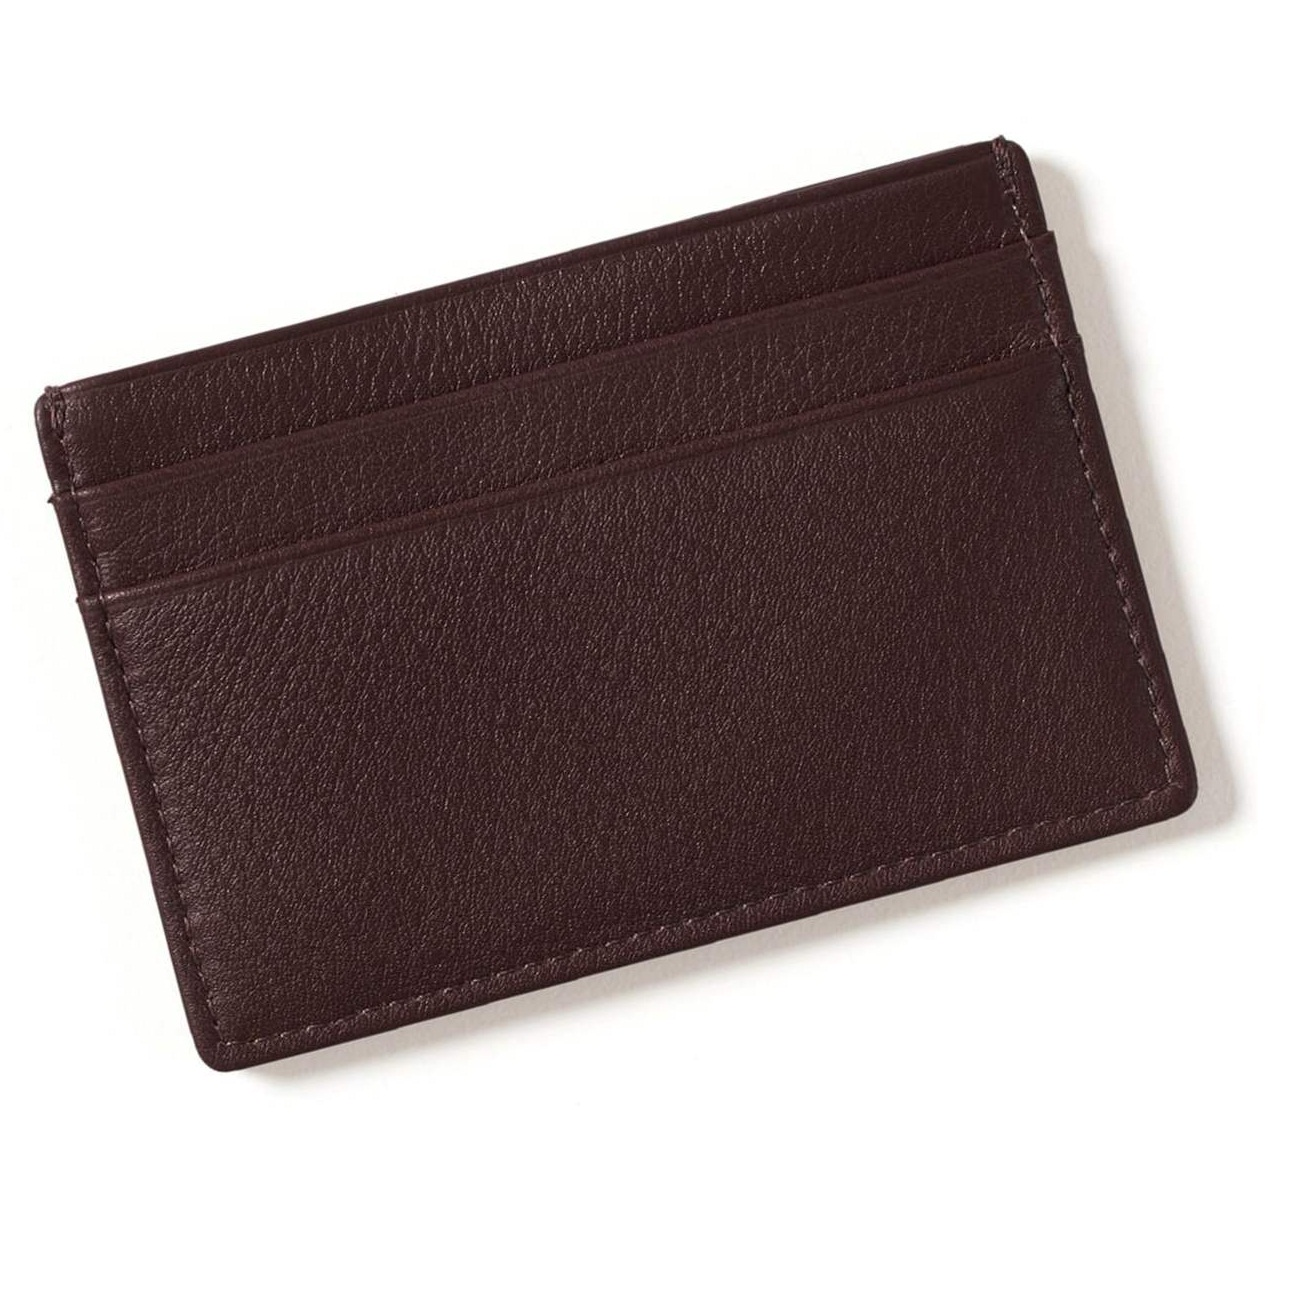 Leather Thin Wallet Slim Minimalist Front Pocket Wallets For Men Credit Card Case